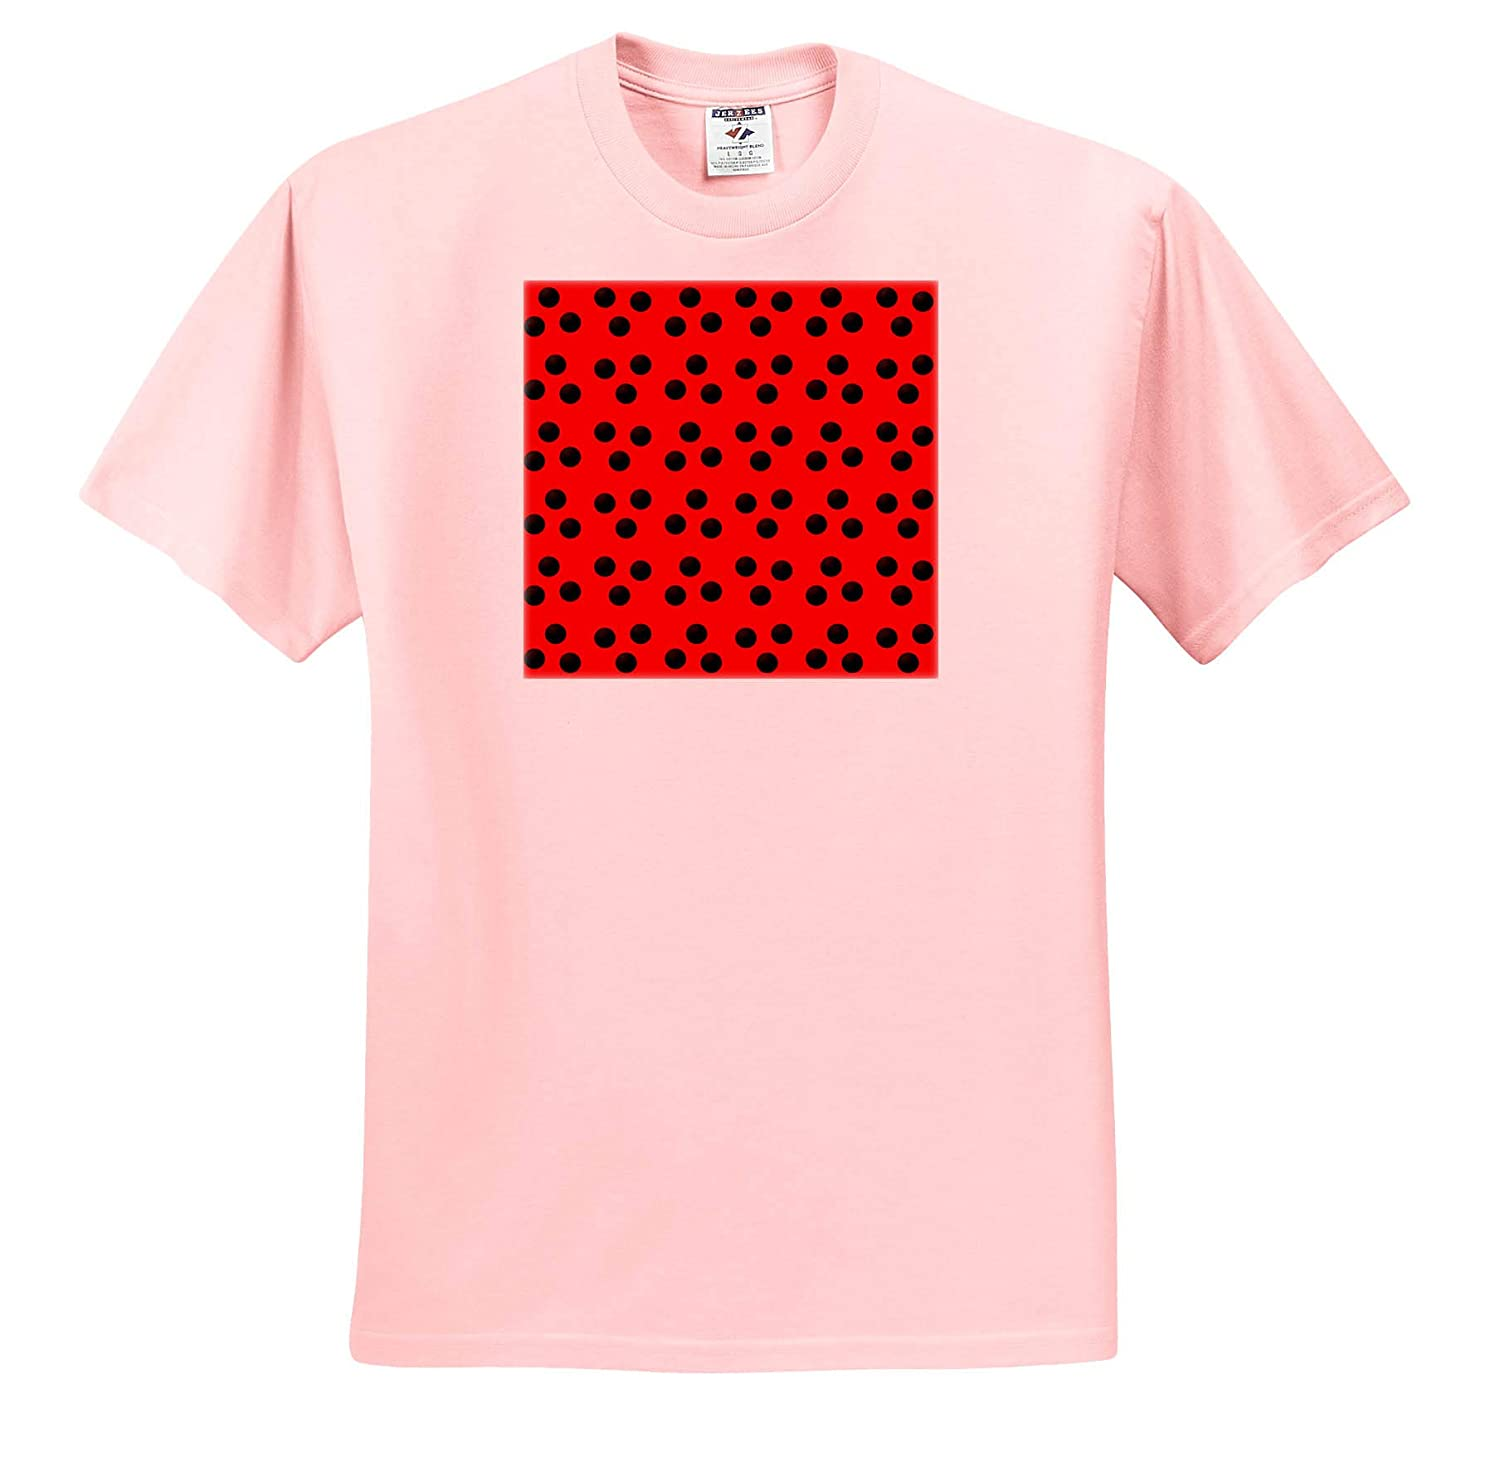 Adult T-Shirt XL Patterns Cute Lady Bug Red with Black Dots Pattern 3dRose Anne Marie Baugh ts/_317949